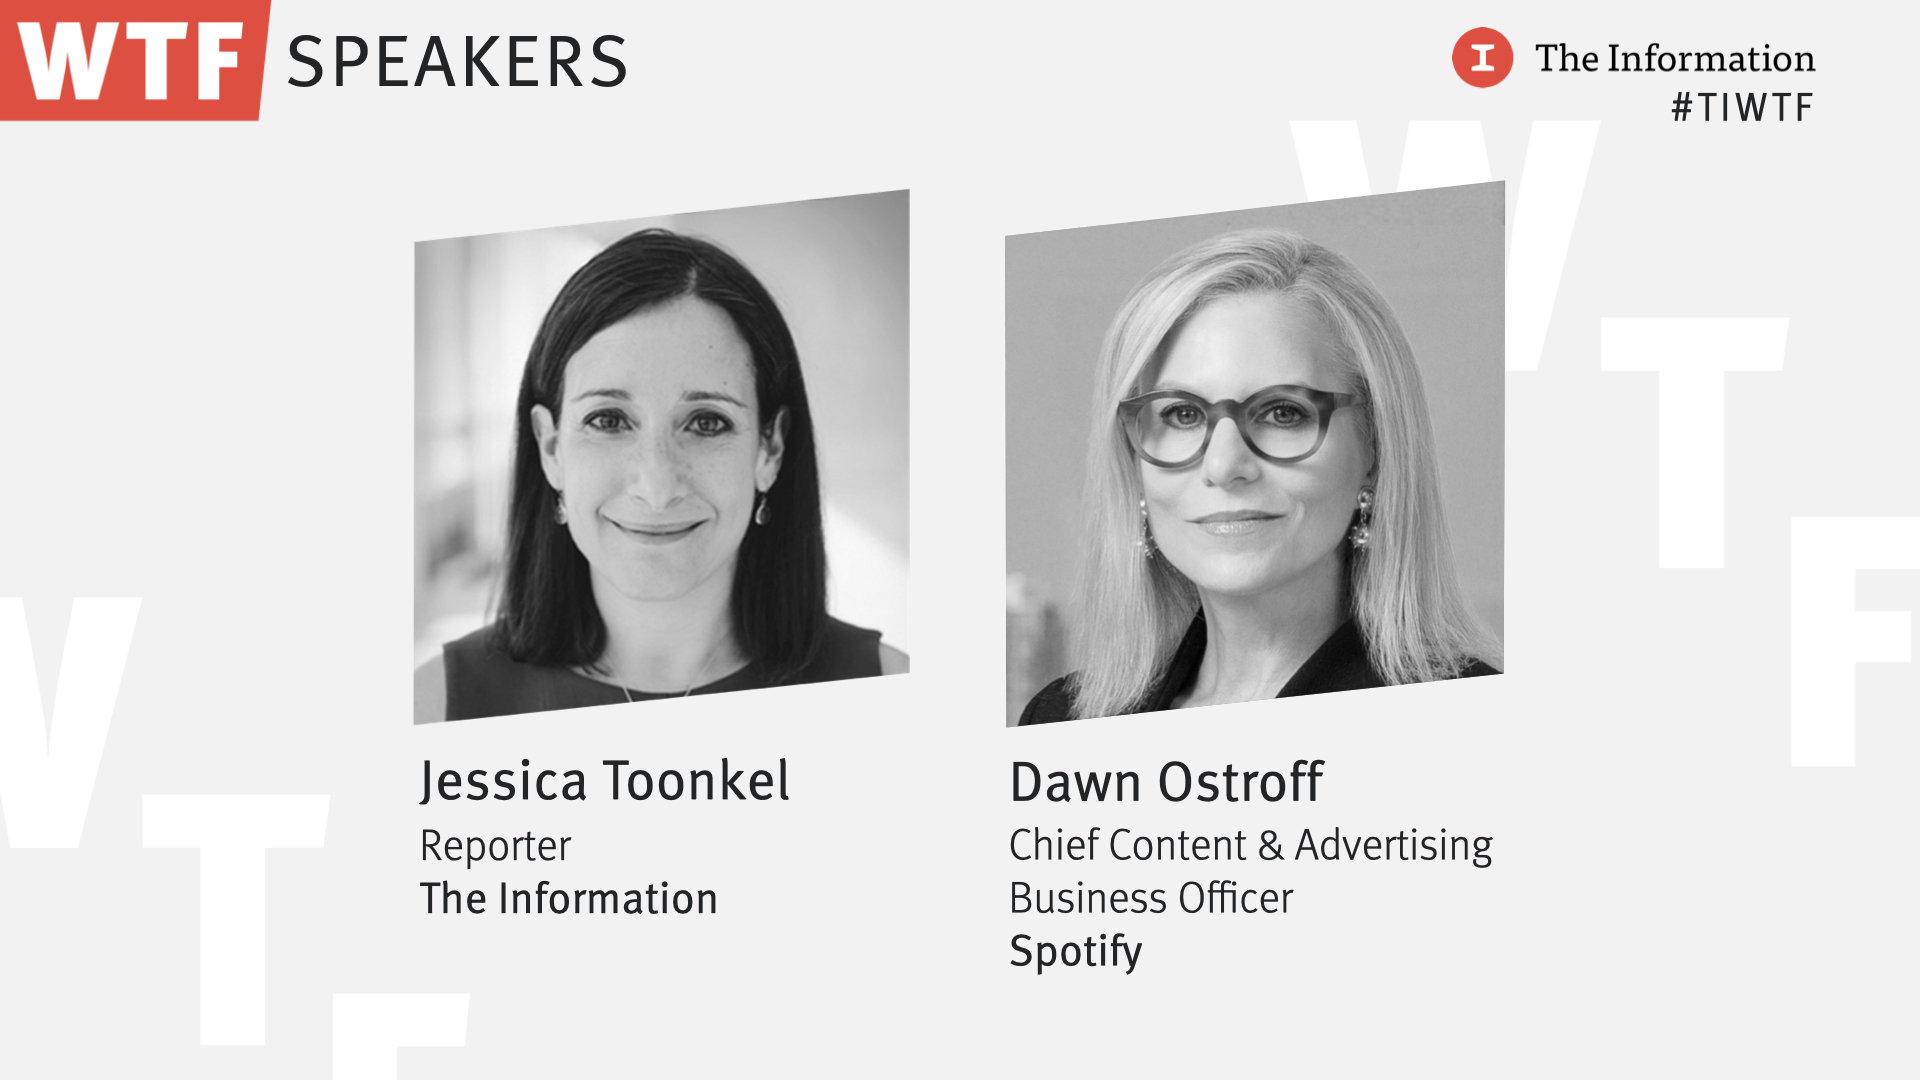 WTF 2021 - Dawn Ostroff, Chief Content & Advertising Business Officer, Spotify in conversation with Jessica Toonkel, Reporter, The Information